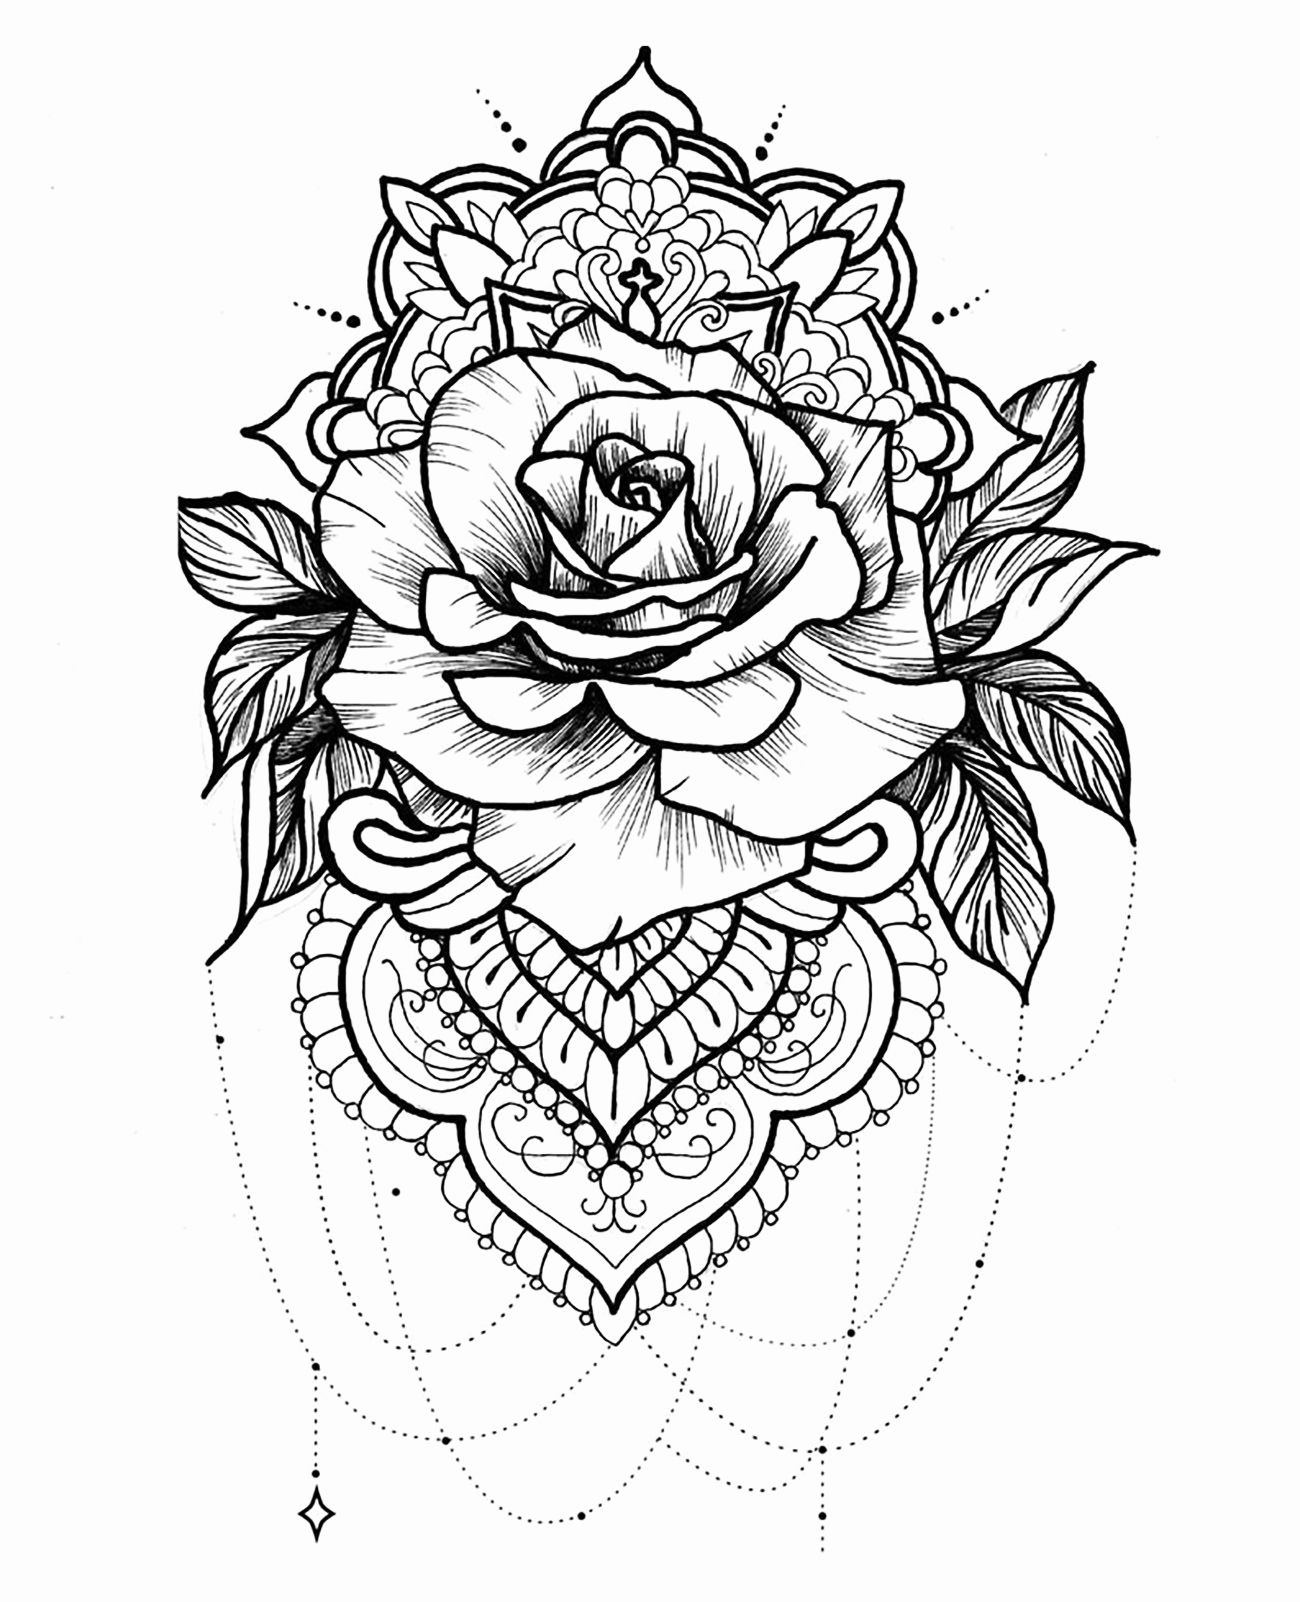 Flower Mandala Coloring Pages For Kids Printable In 2020 Tattoo Coloring Book Flower Coloring Pages Mandala Coloring Books